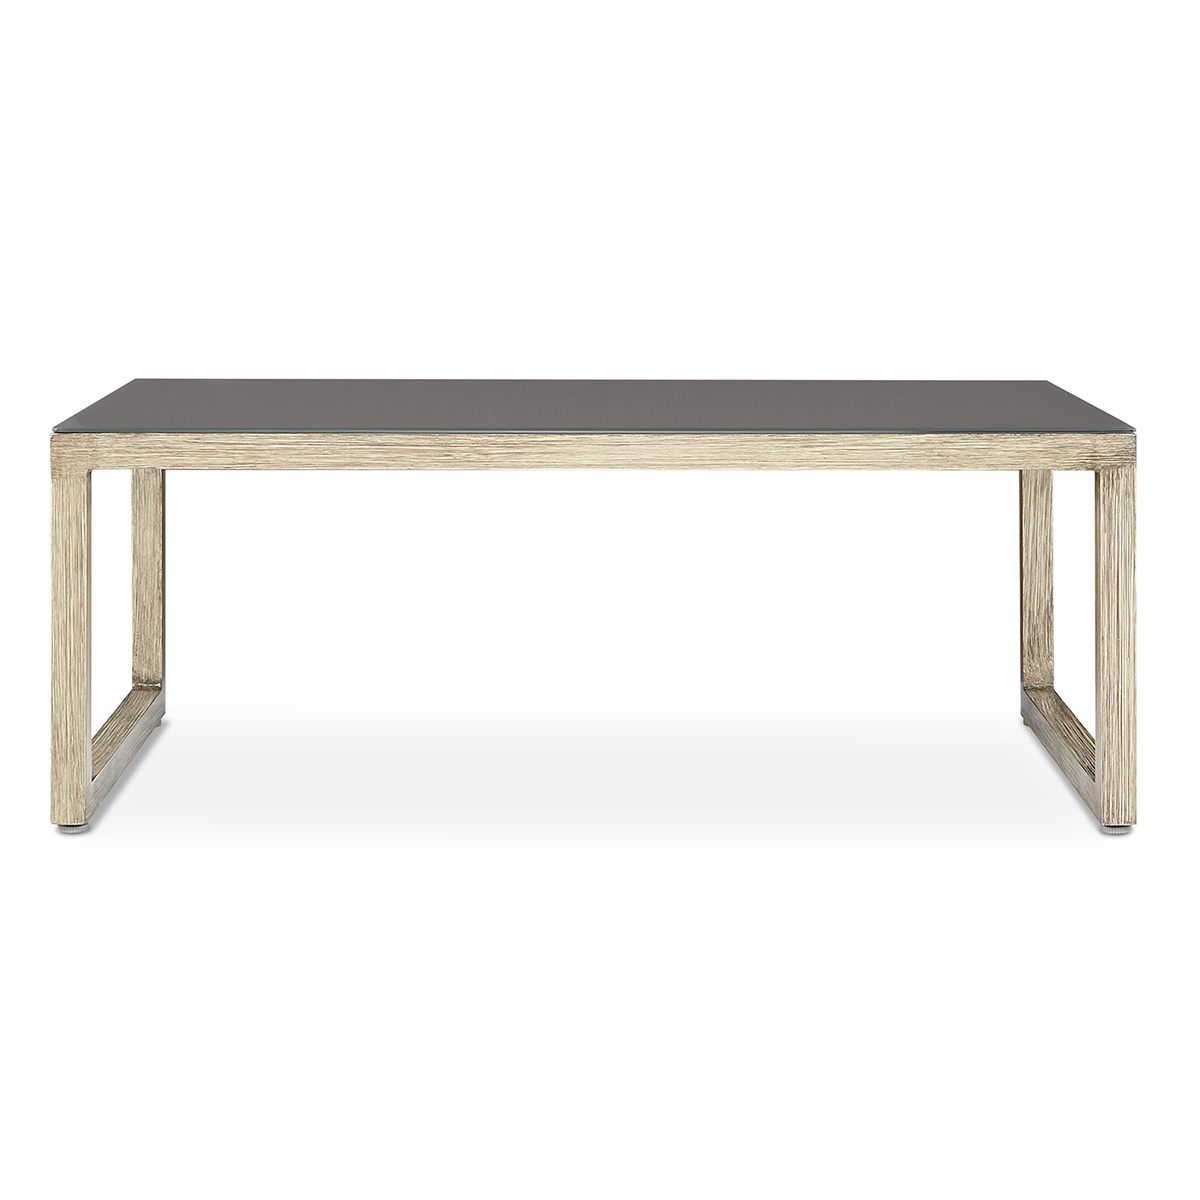 Real flame 1172 baw monaco coffee table in brushed antique white monaco coffee table in brushed antique white aluminum frame w glass top geotapseo Gallery